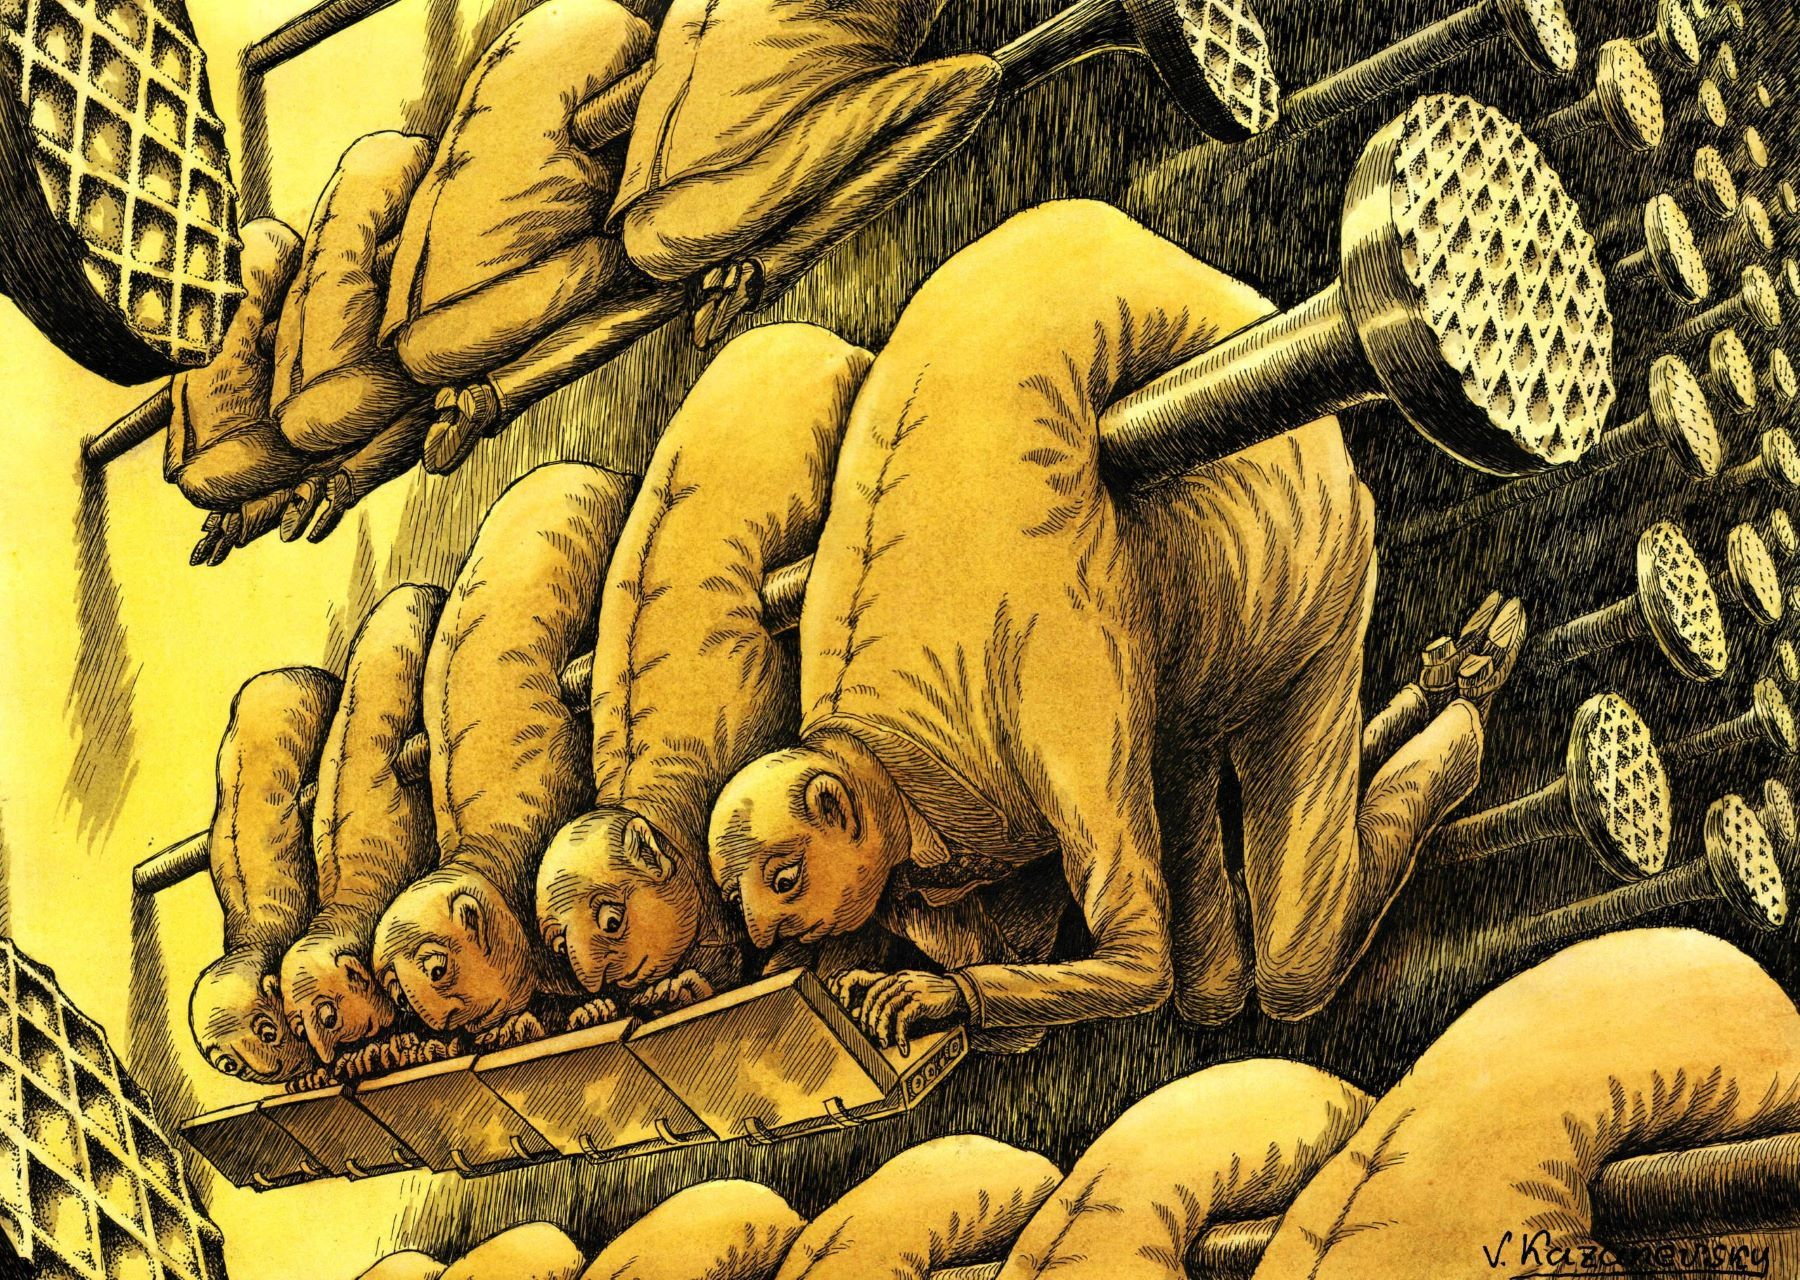 Drawing from the exhibition depicting forced labour